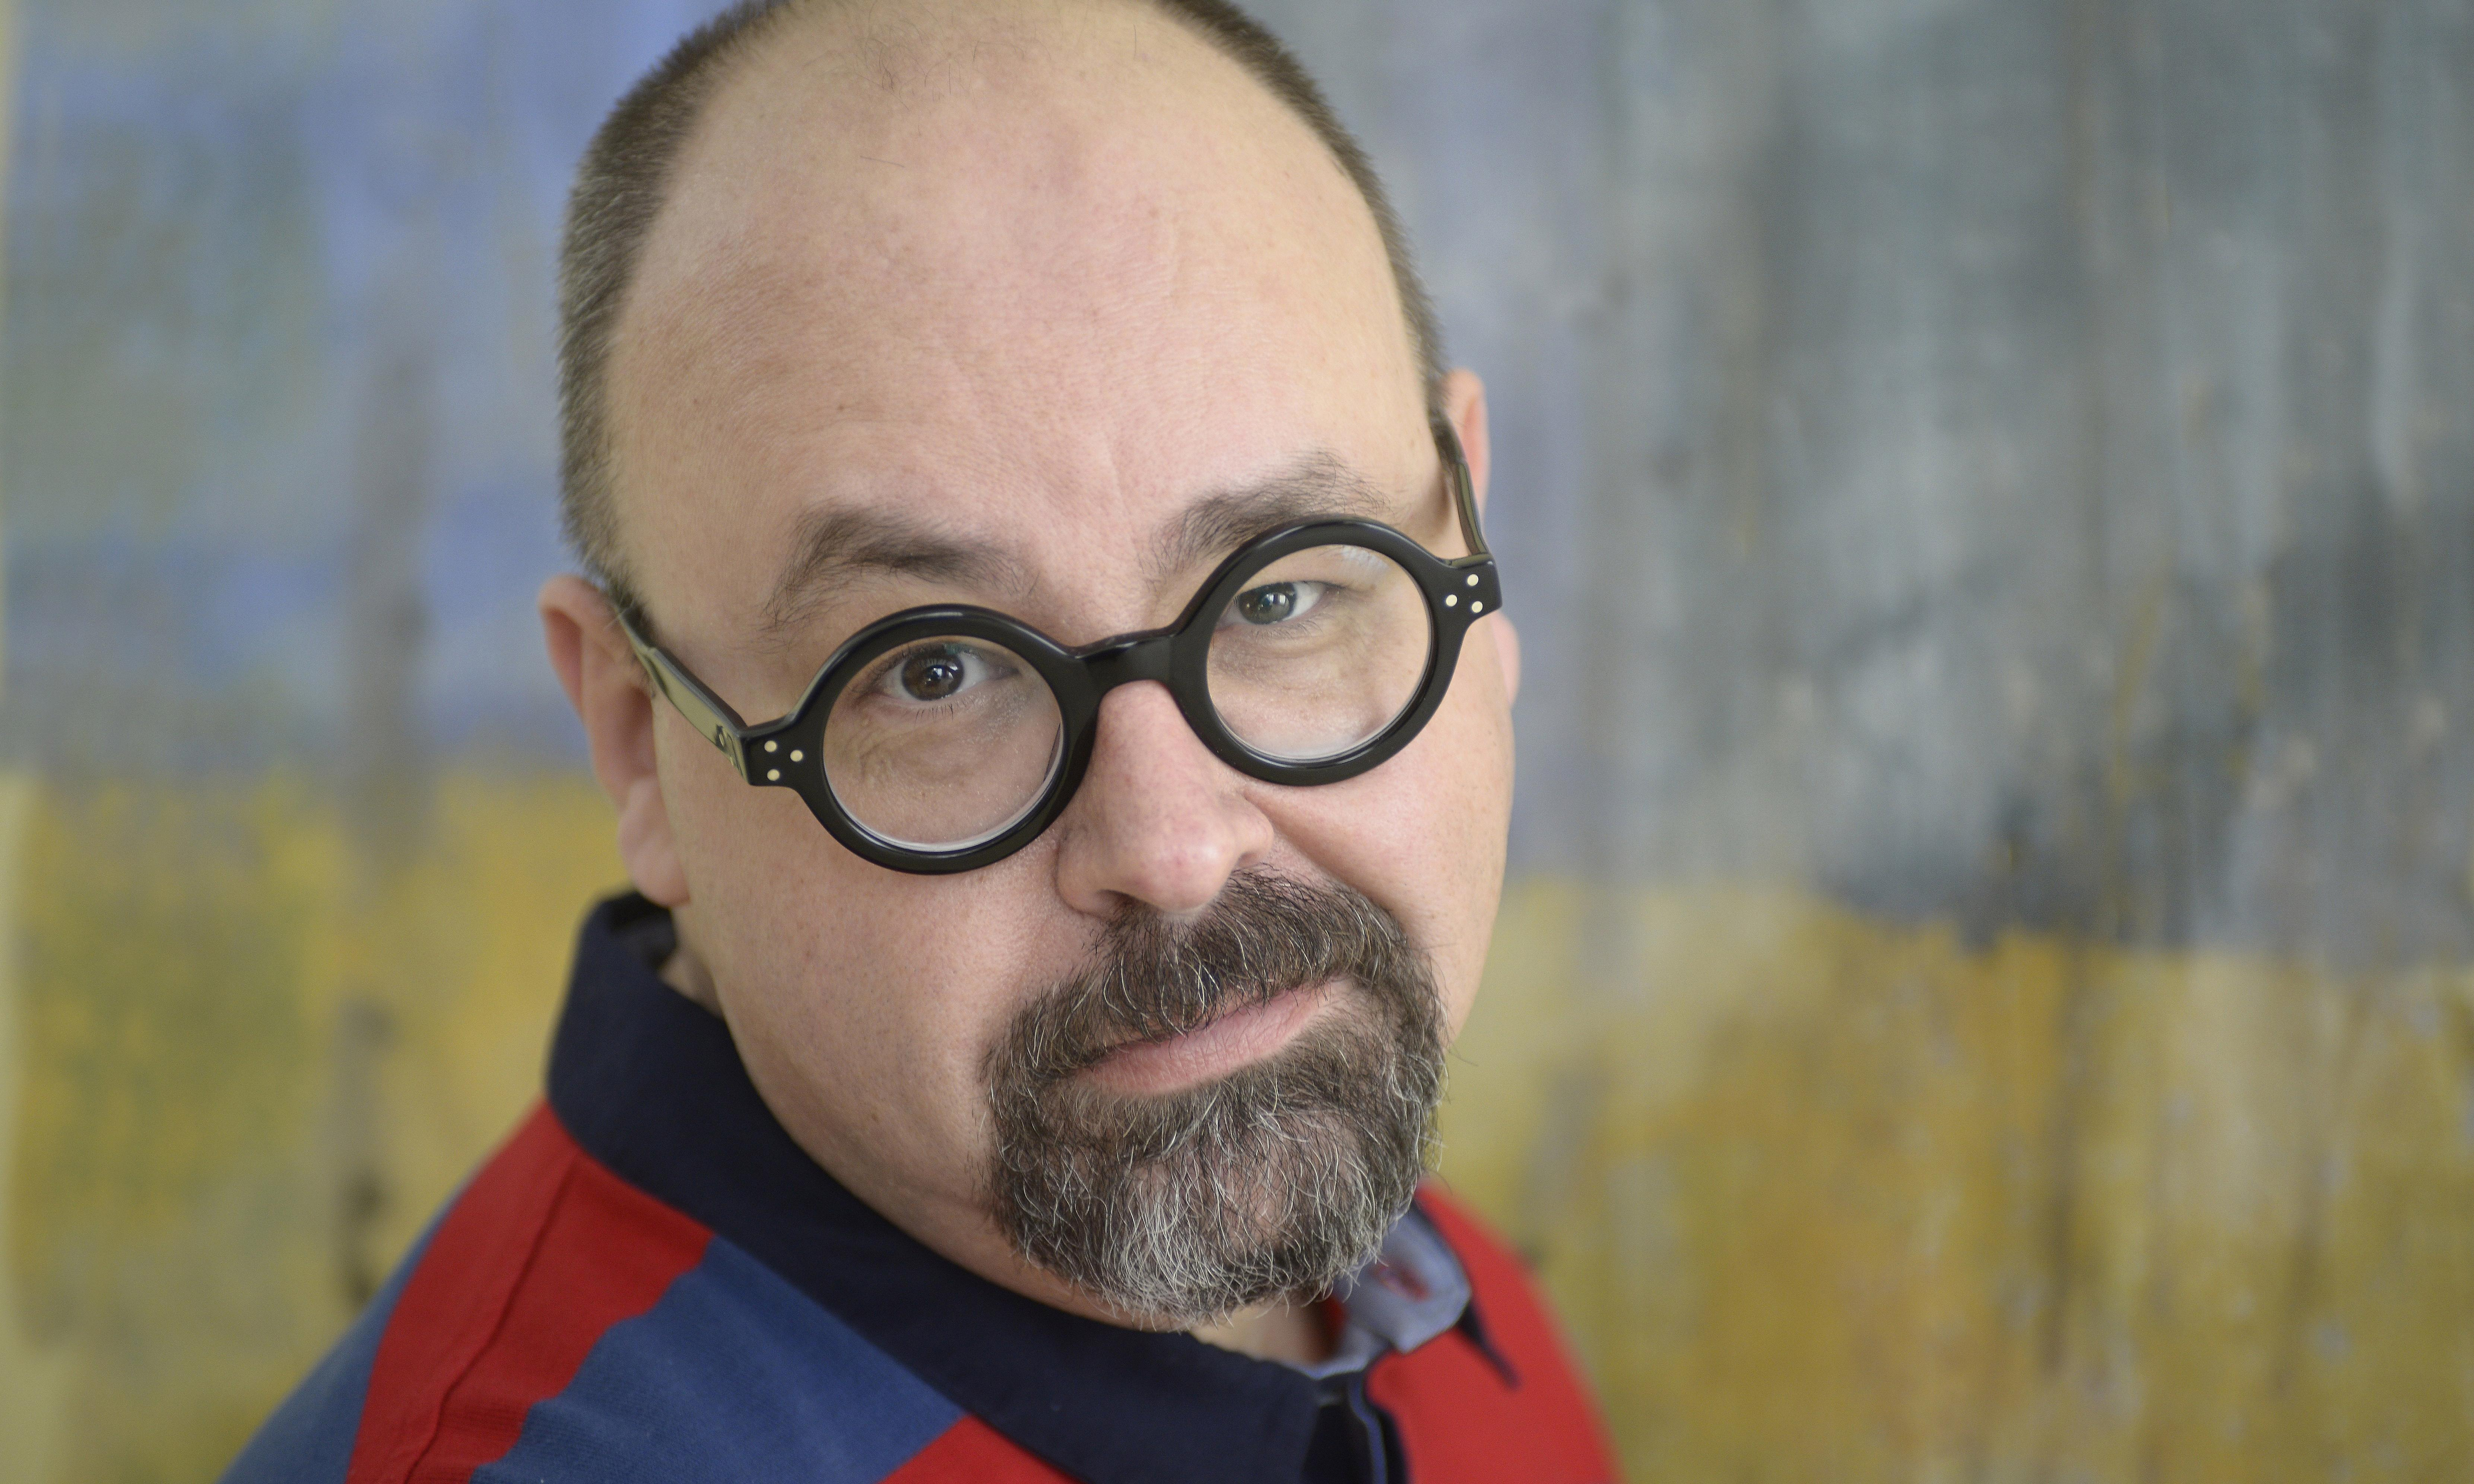 The Labyrinth of the Spirits by Carlos Ruiz Zafón review – a colossal achievement